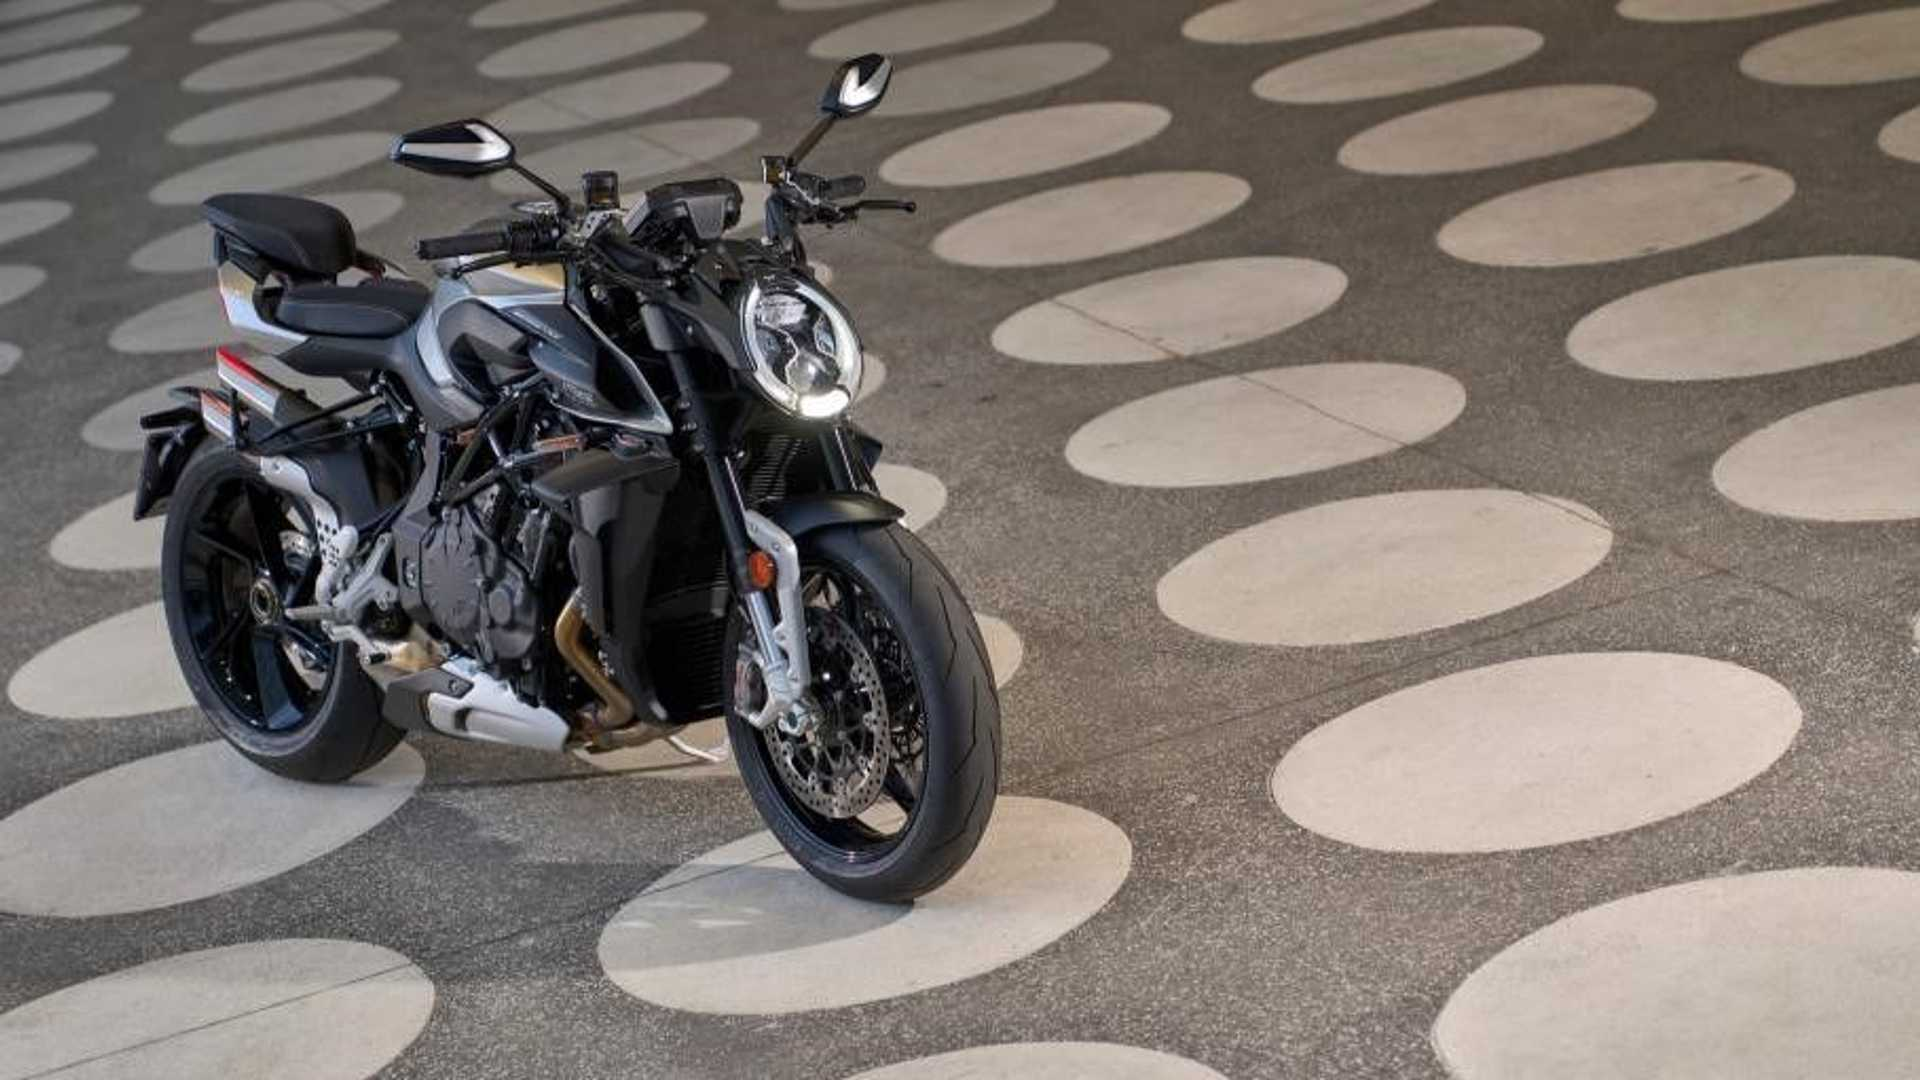 2022 MV Agusta Brutale RS - Top, Right